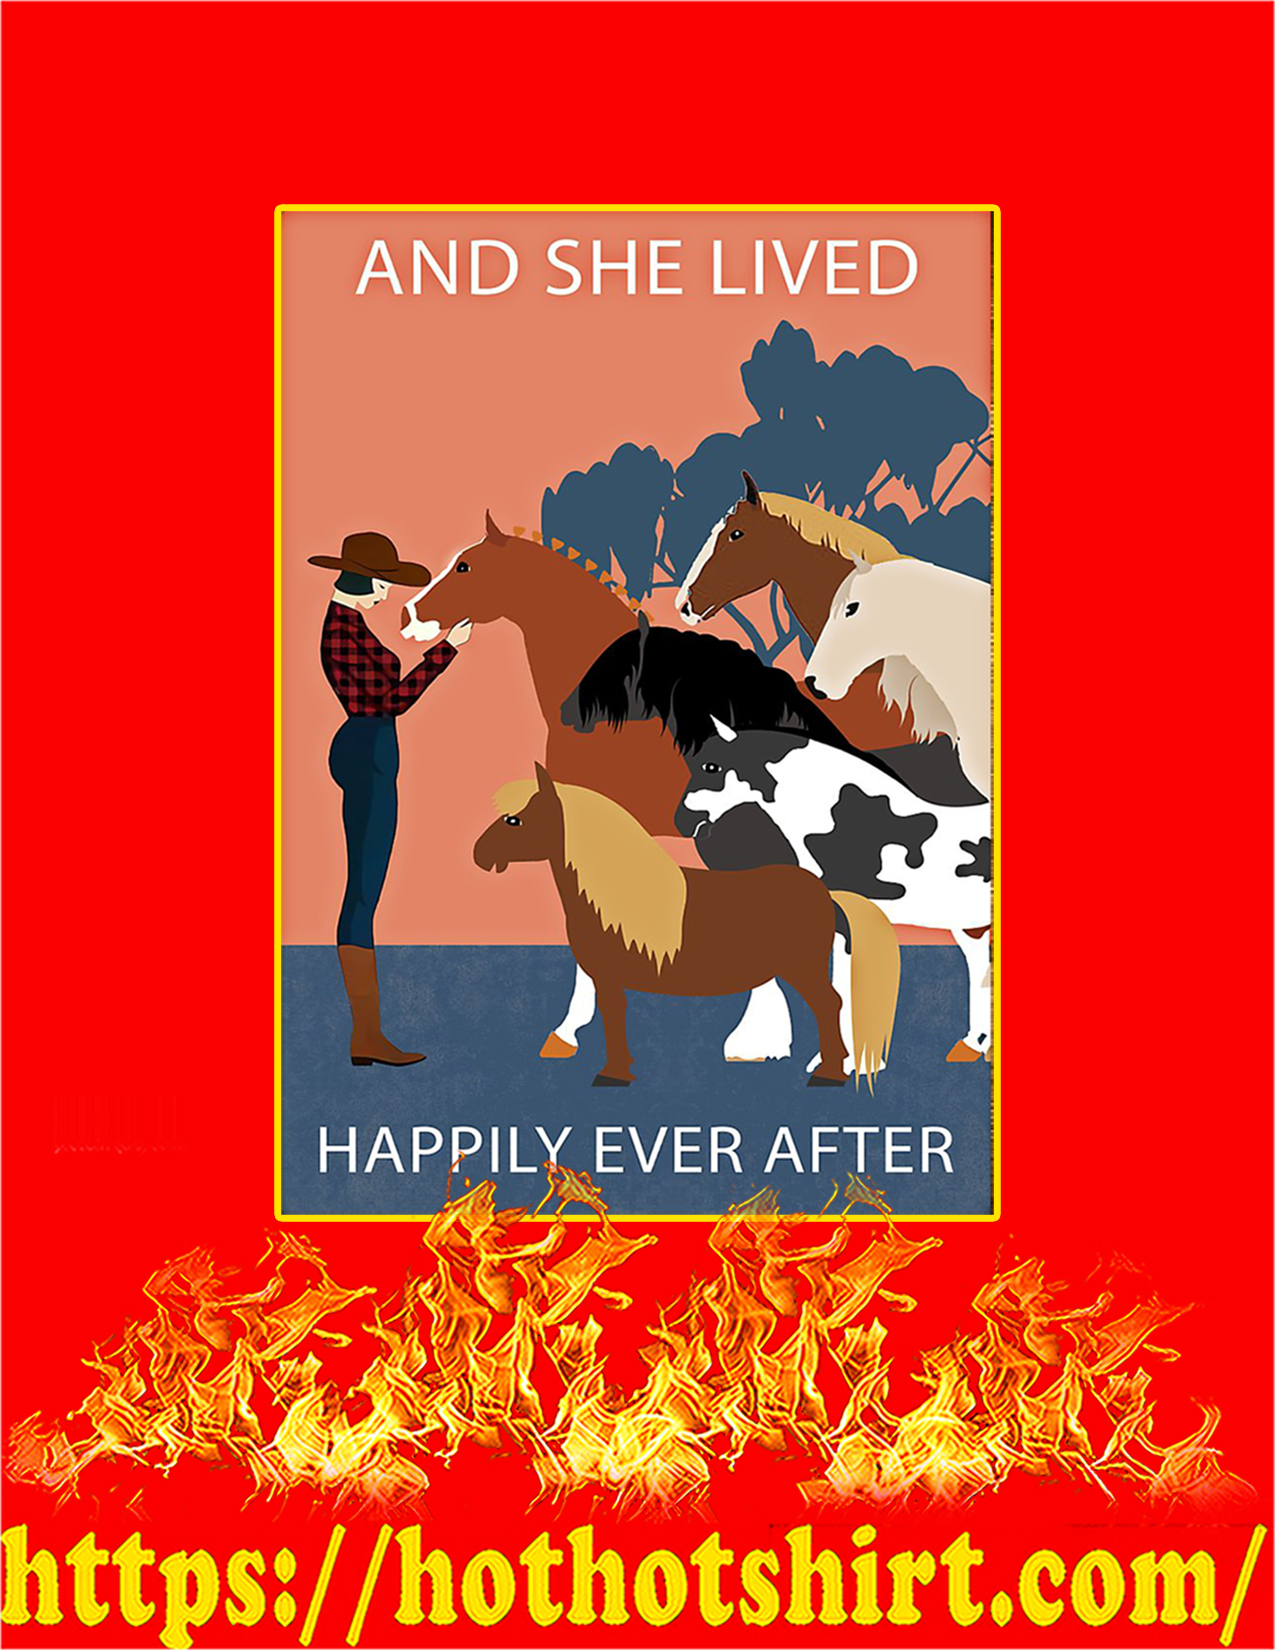 Horses And she lived happily ever after poster - A2